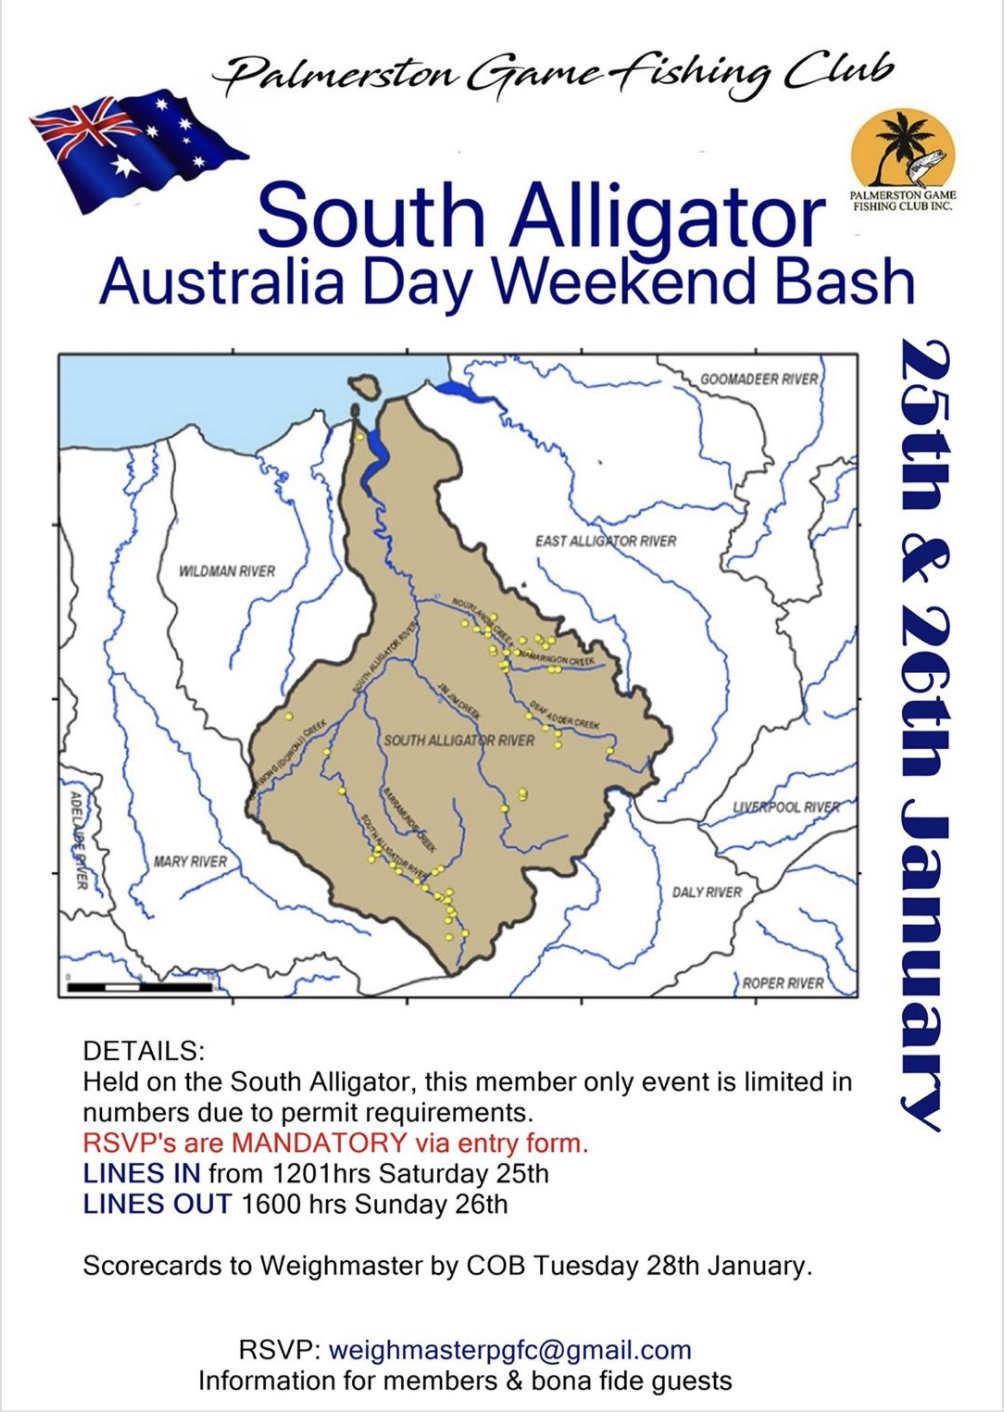 South Alligator – Australia Day Weekend Bash